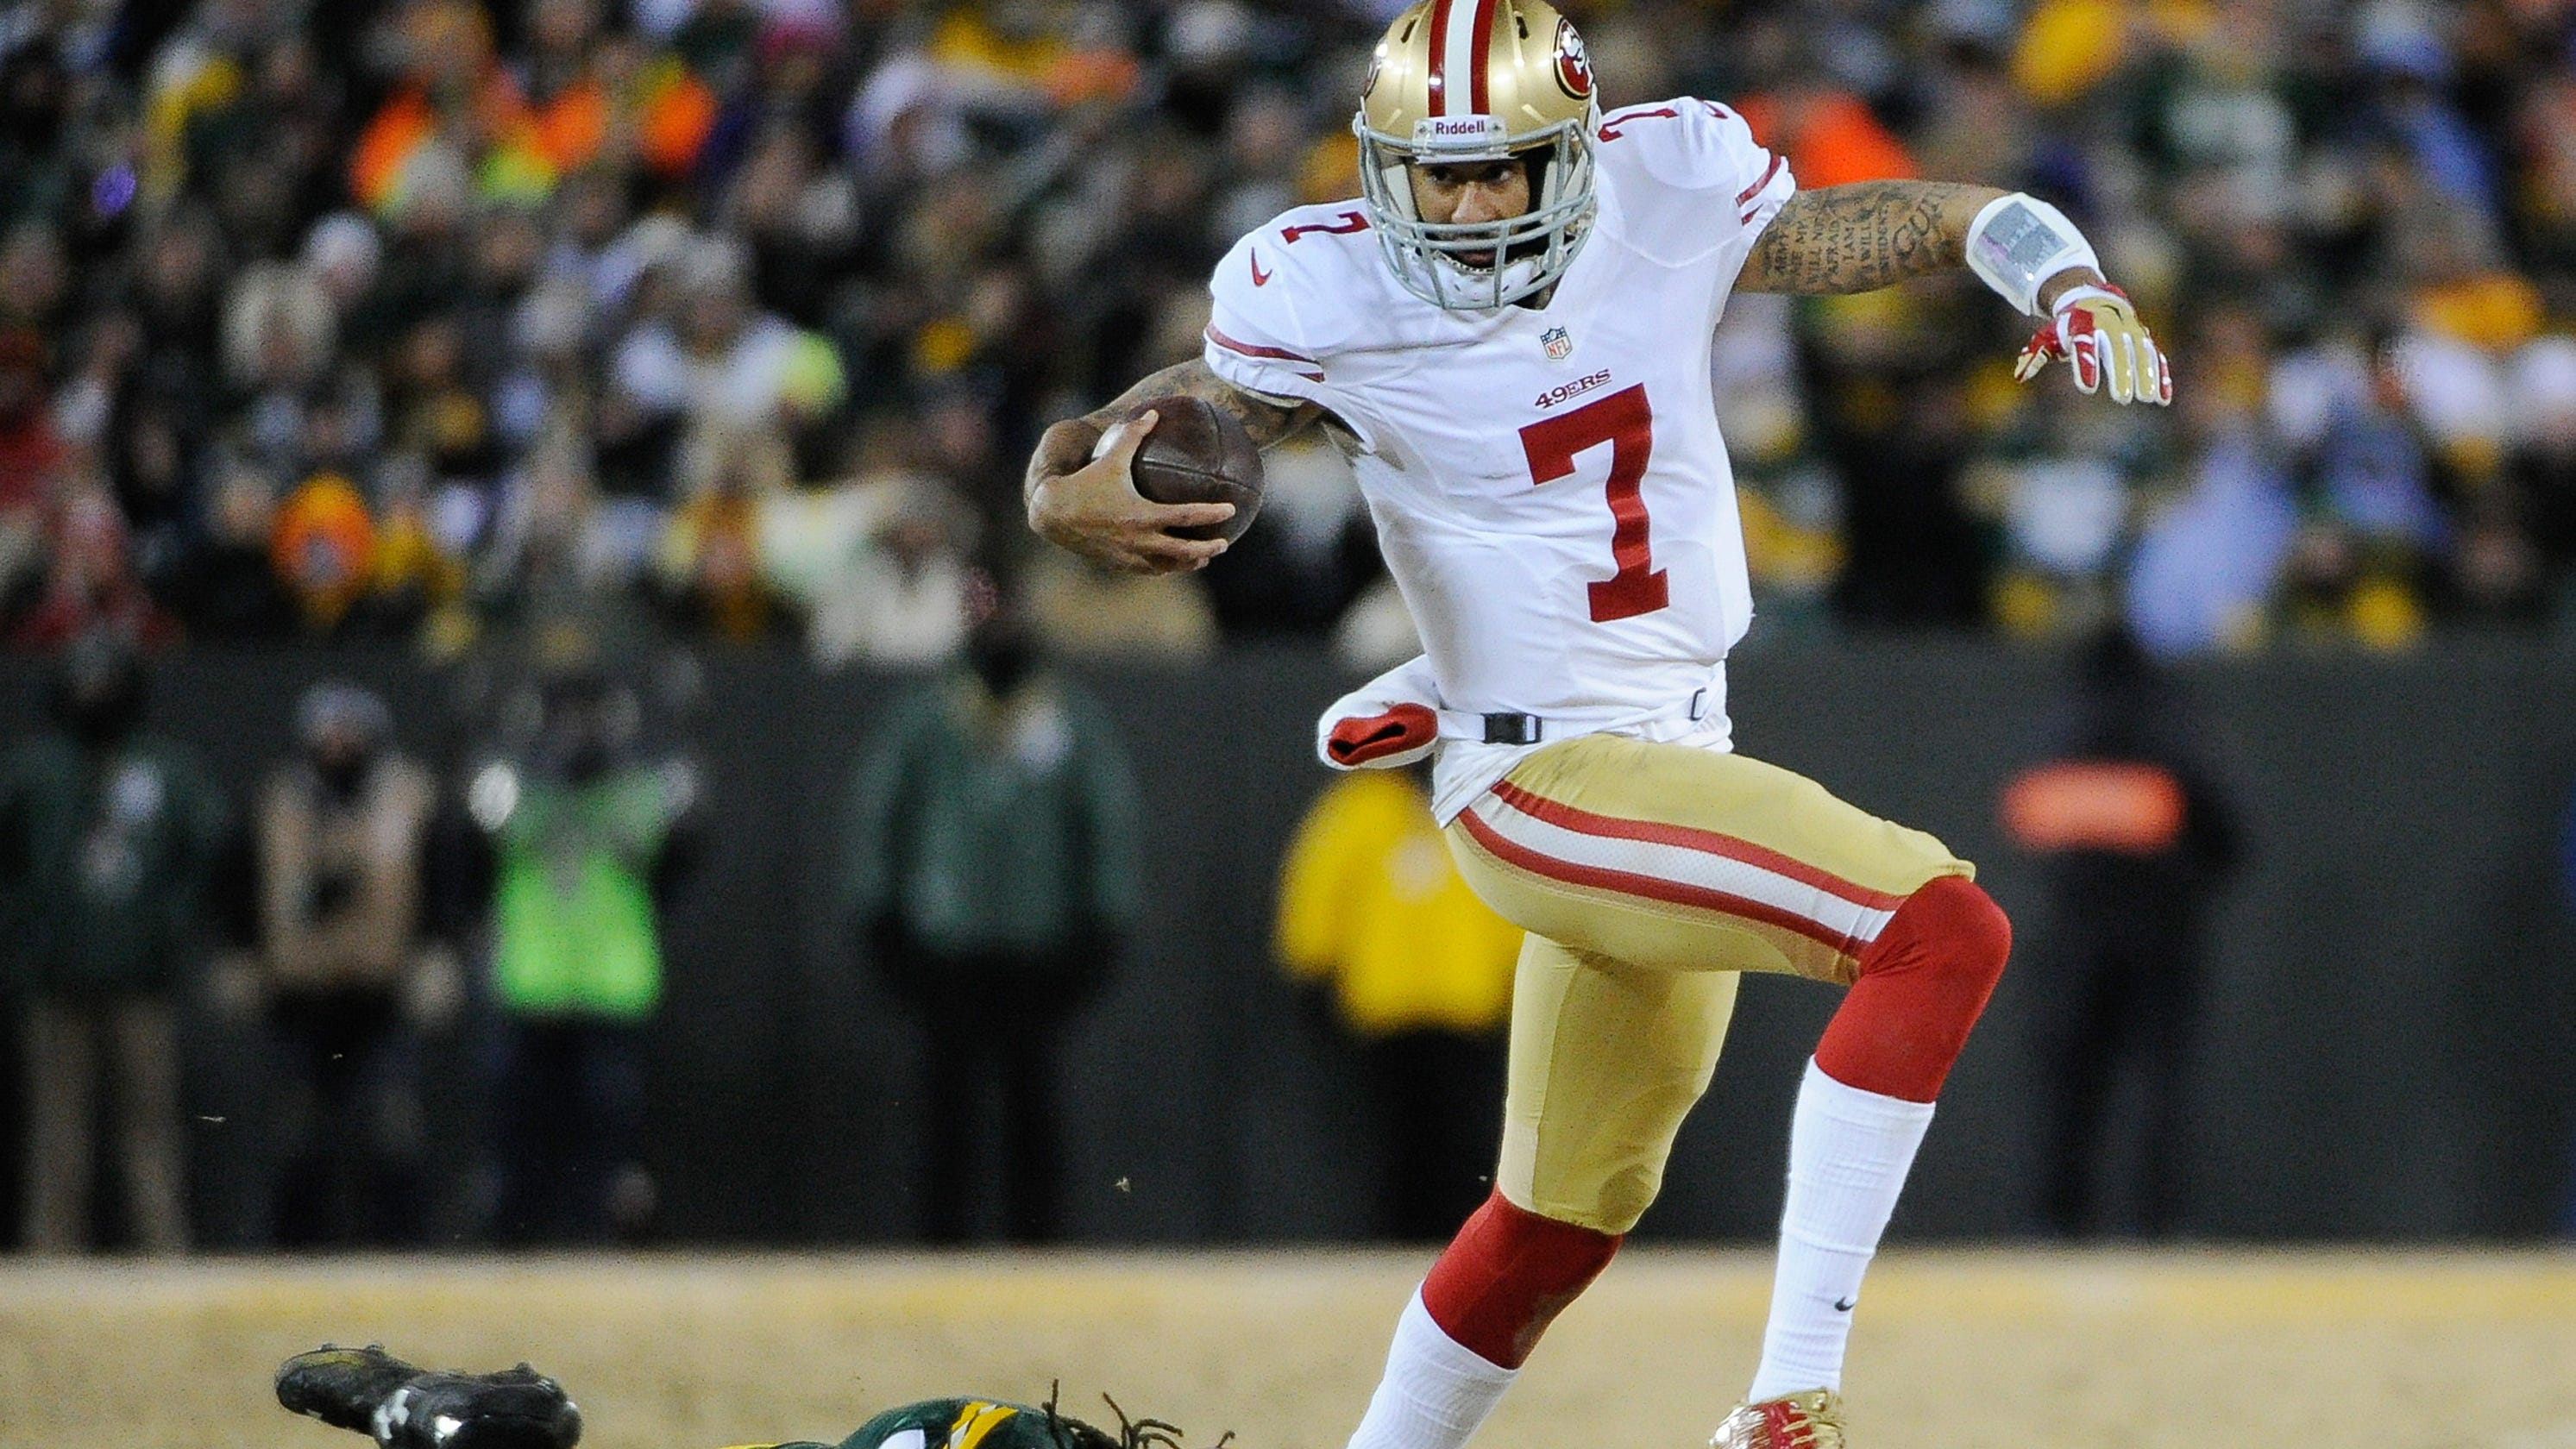 reputable site c531c cbaa1 San Francisco 49ers omit Colin Kaepernick from Packers photo ...